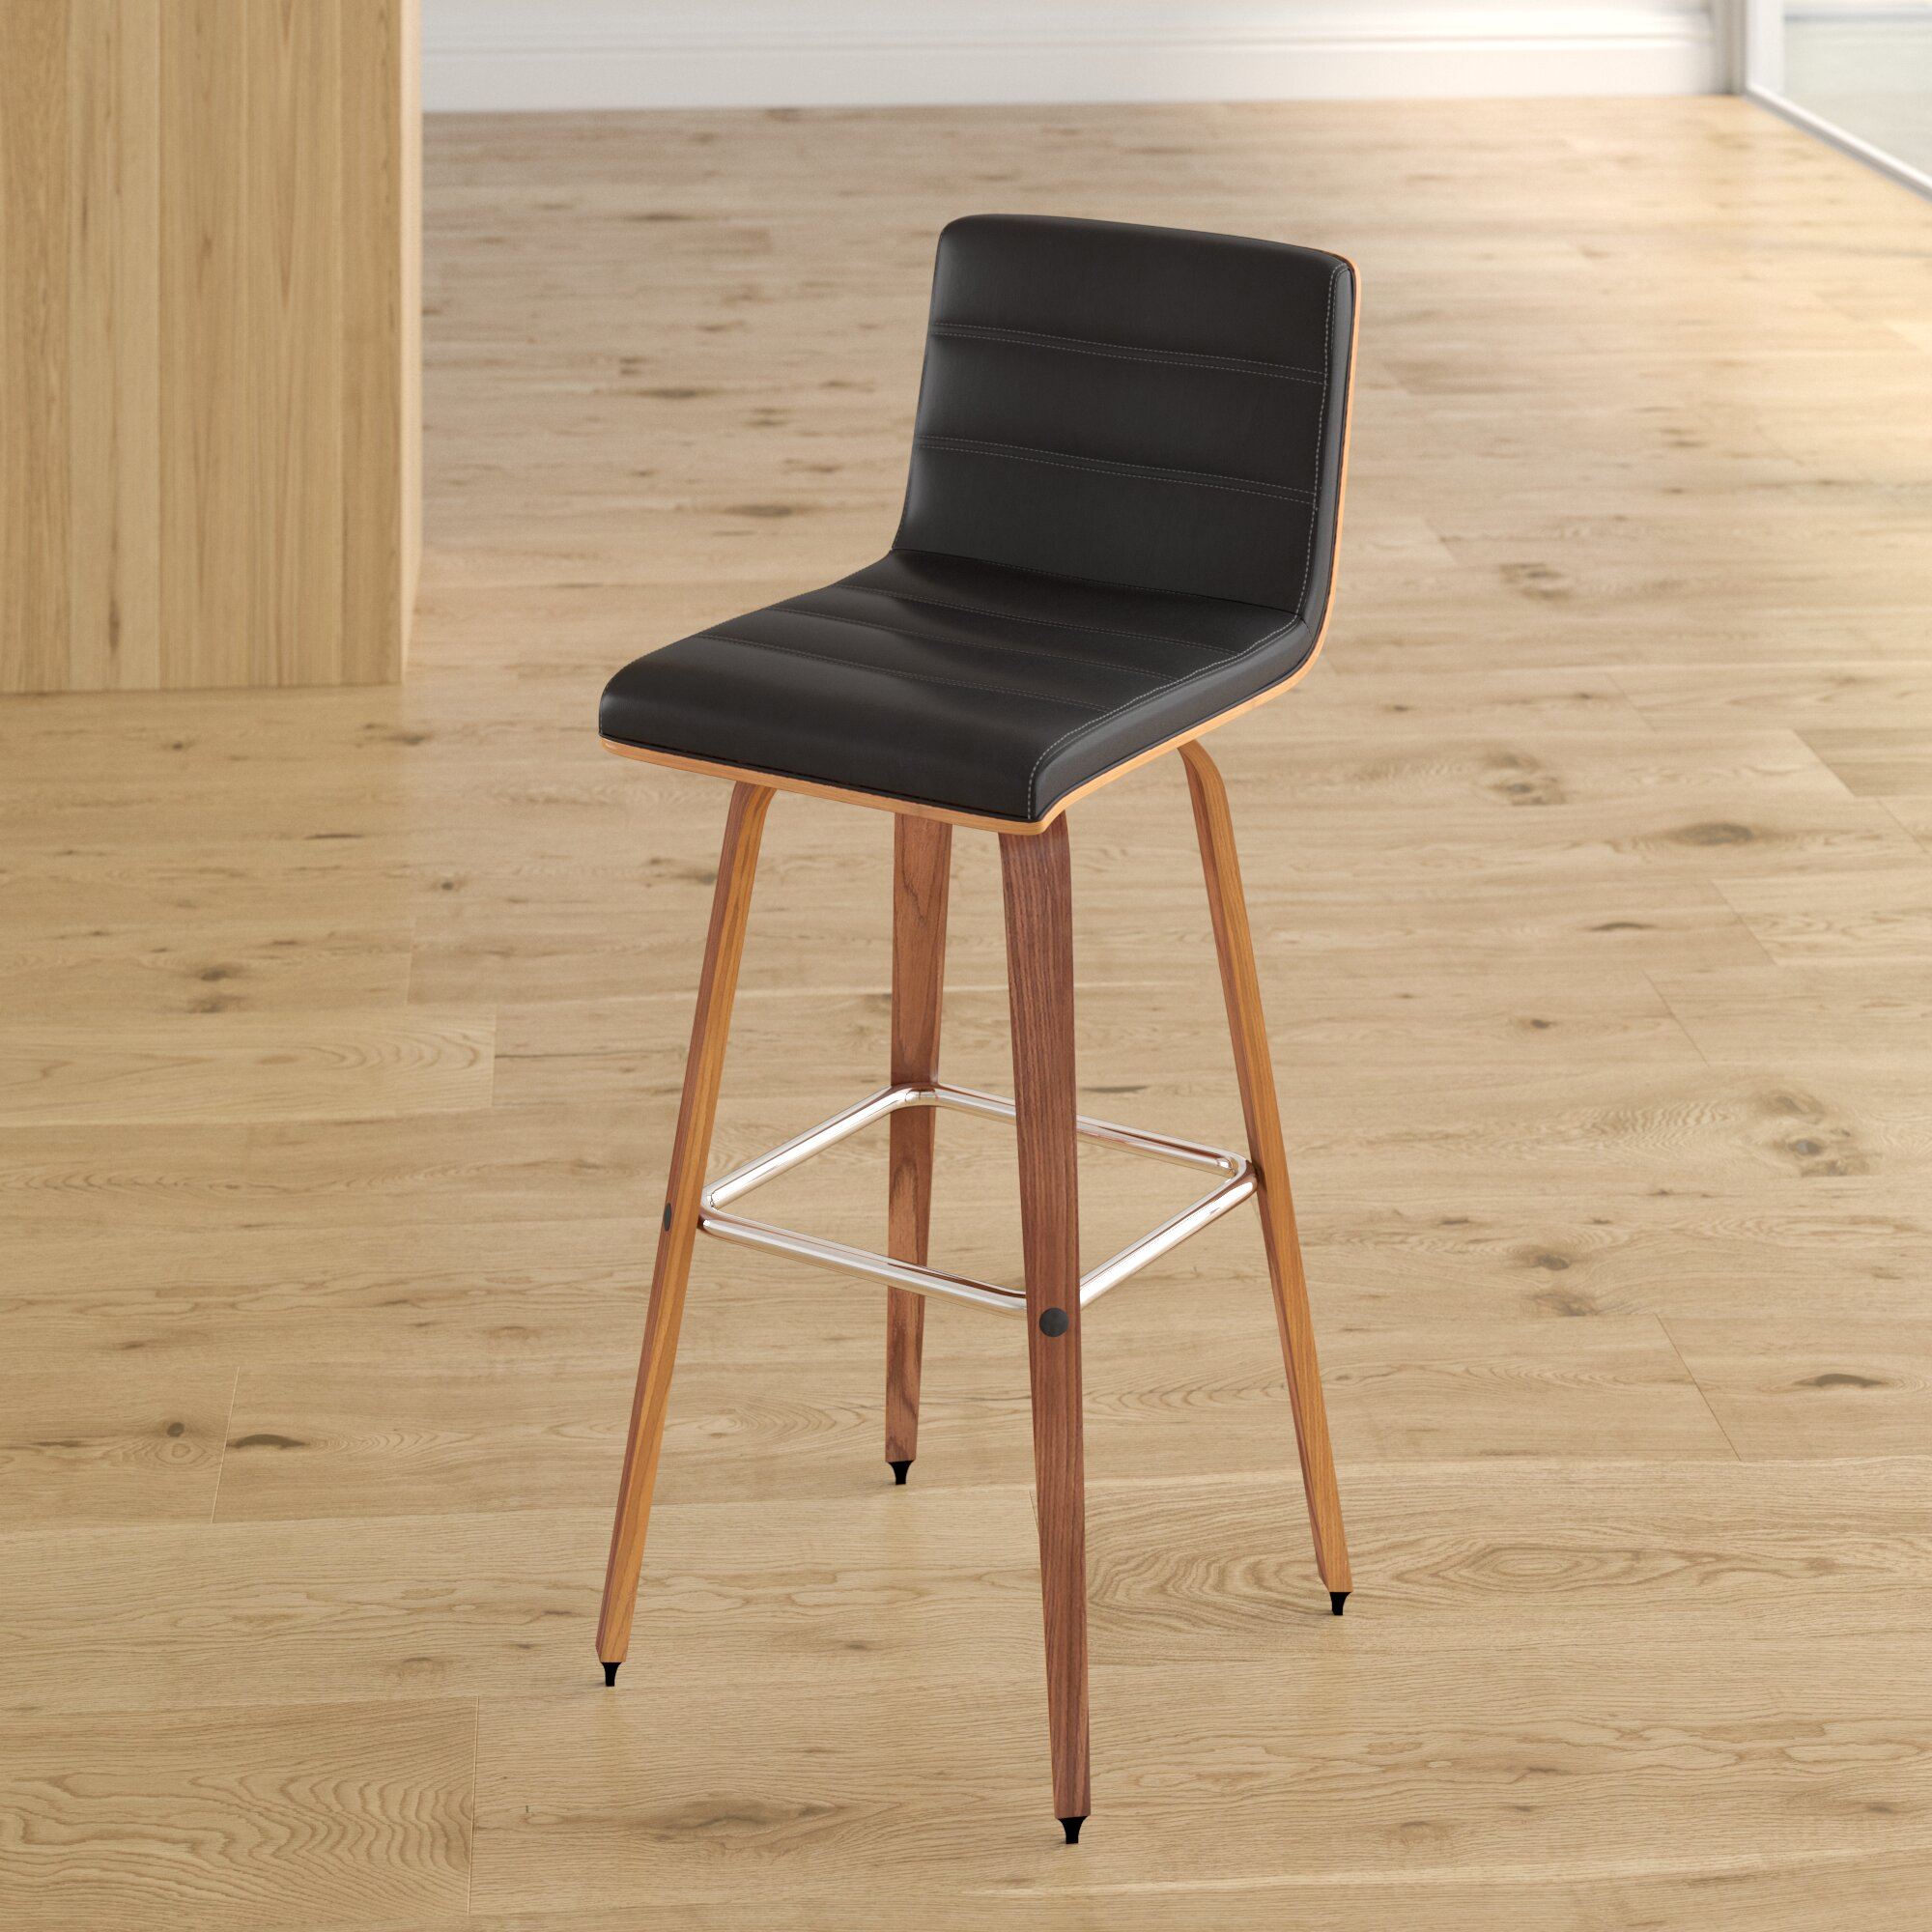 Peachy Denise Swivel Bar Counter Stool Gmtry Best Dining Table And Chair Ideas Images Gmtryco